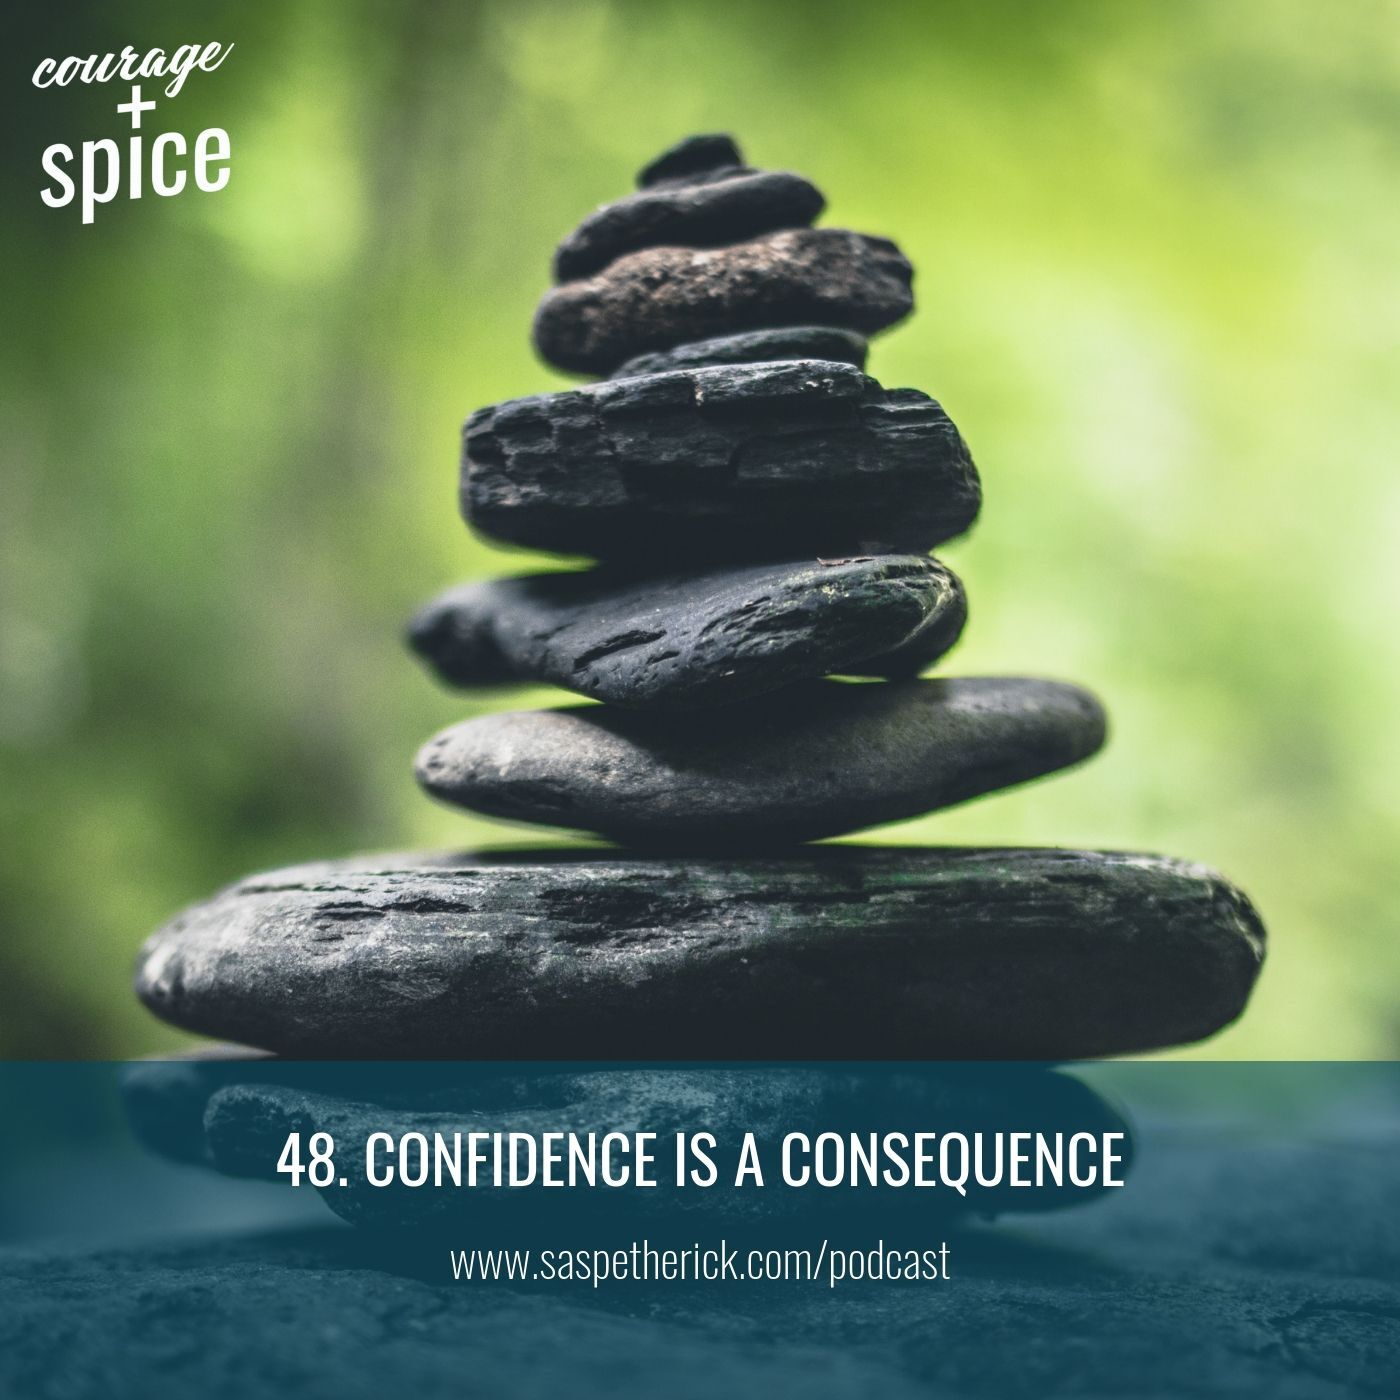 Confidence is a Consequence